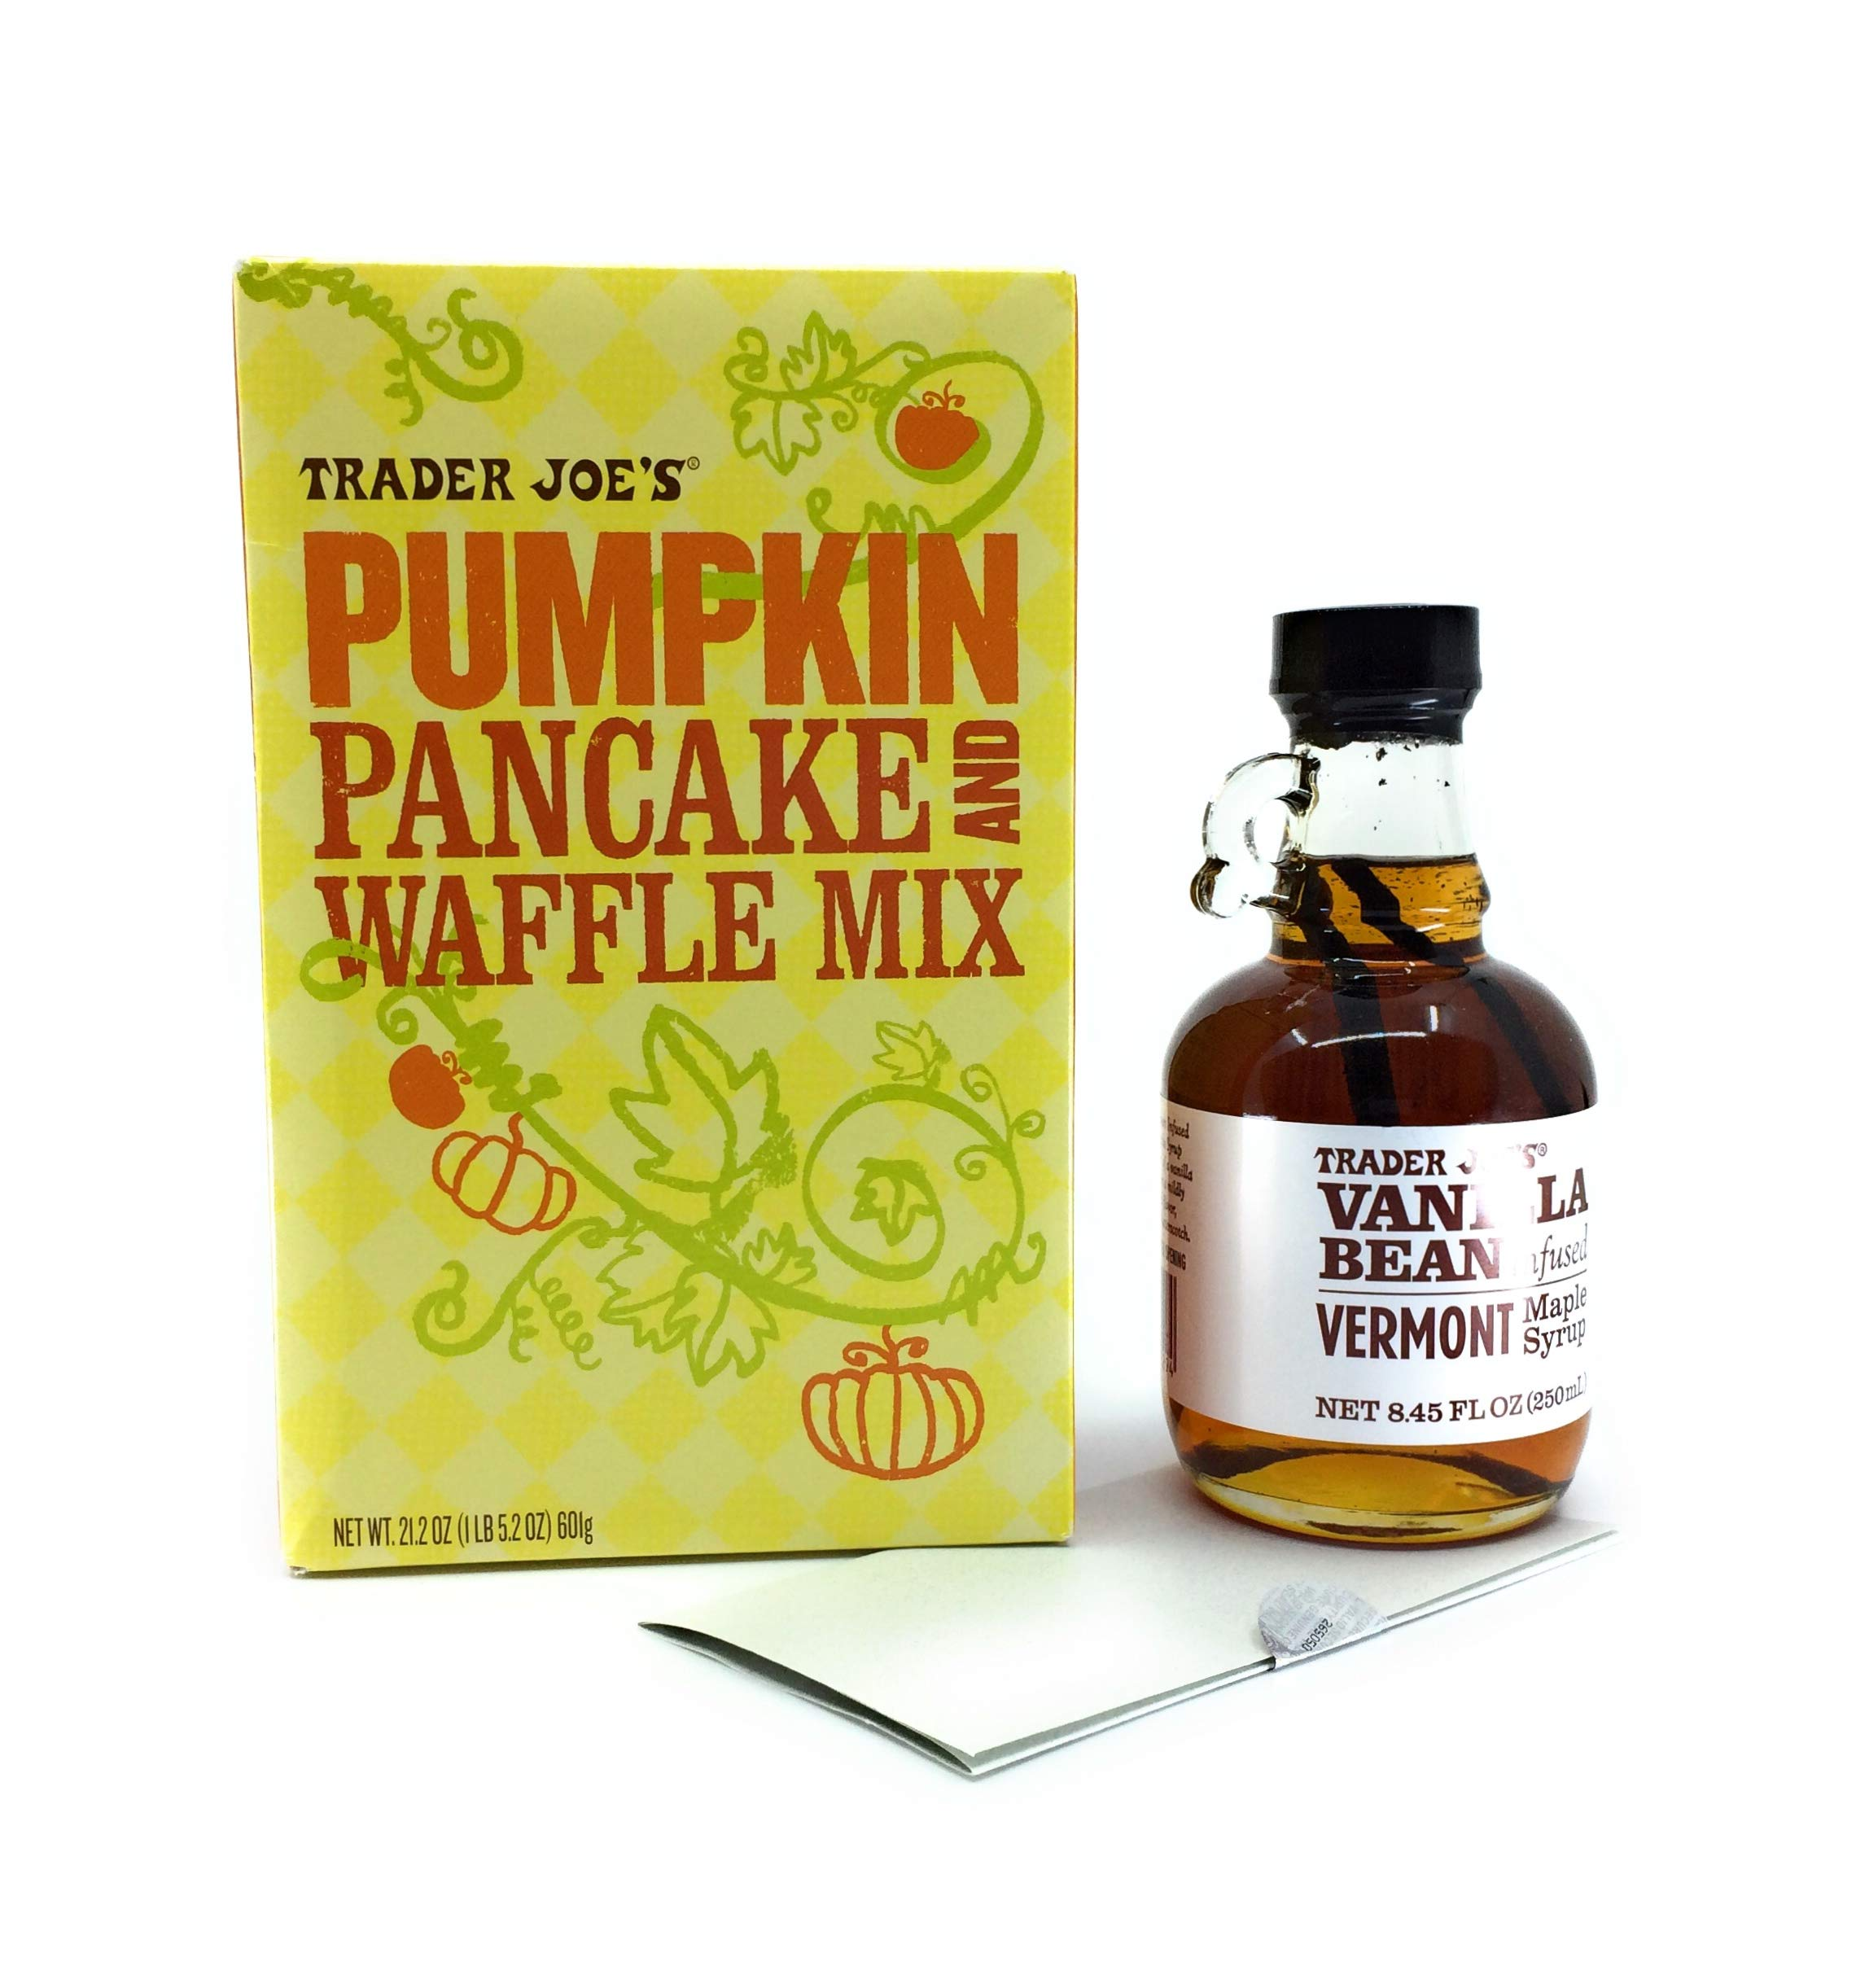 Trader Joes Pumpkin Pancake and Waffle Mix and TJ's - Vanilla Bean Infused Vermont Maple Syrup Bundle Plus a Bonus Pumpkin Pie Donuts With Maple Glaze (2+ Items) by Trader Joe's custom